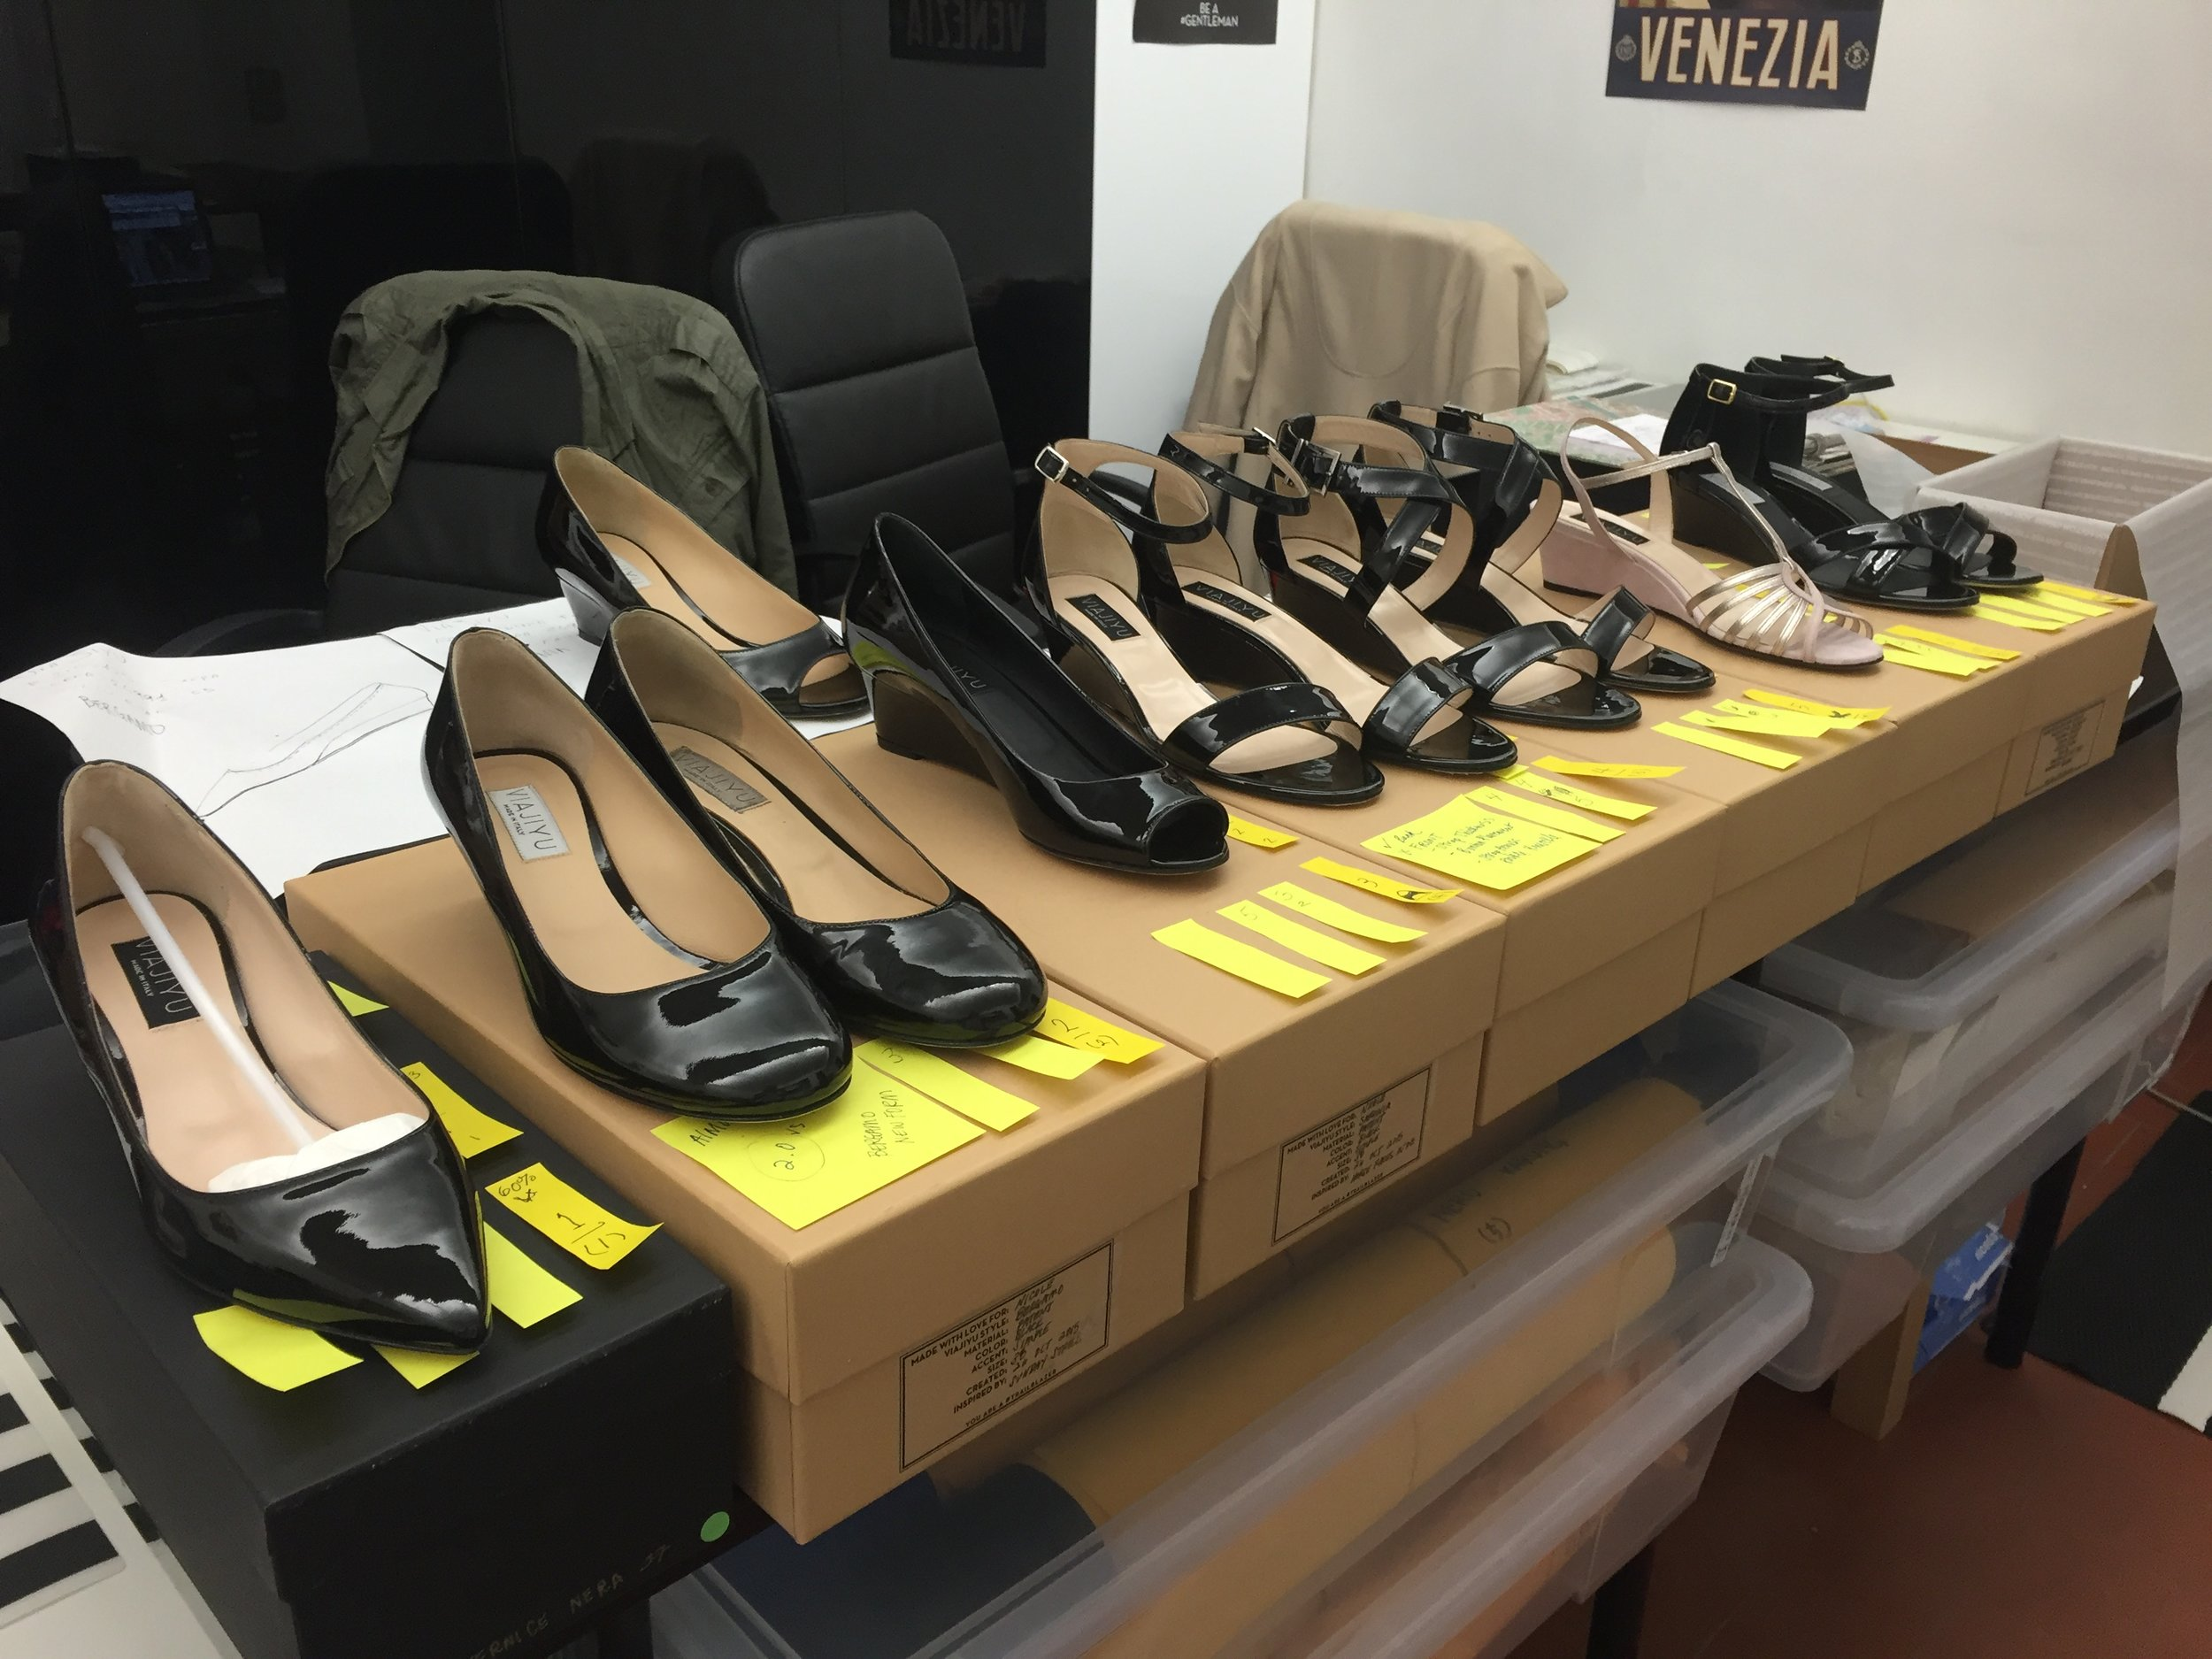 Above are the first prototypes of the sandal variations I designed for Viajiyu. After deciding upon which prototypes we liked best, we narrowed the styles down to 4 sandals that were then put into production.